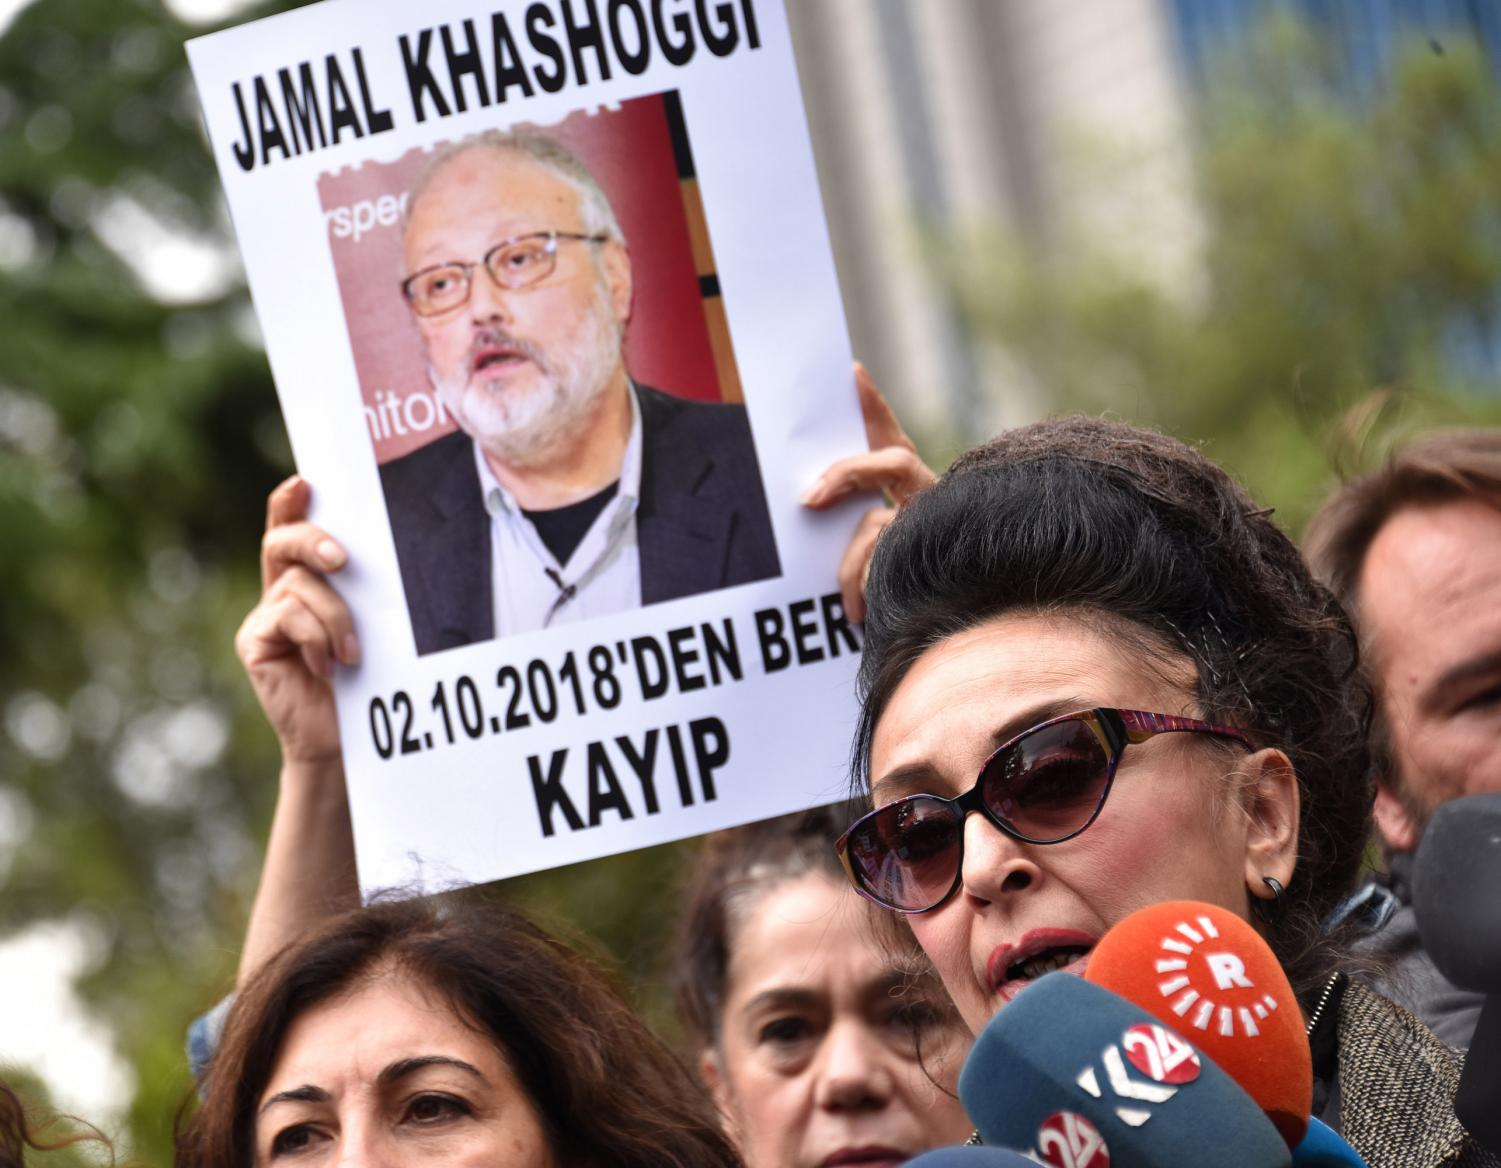 Opinion columnist Jack Ave discusses the recent murder of Jamal Khashoggi, and the U.S. needs to learn from this incident.